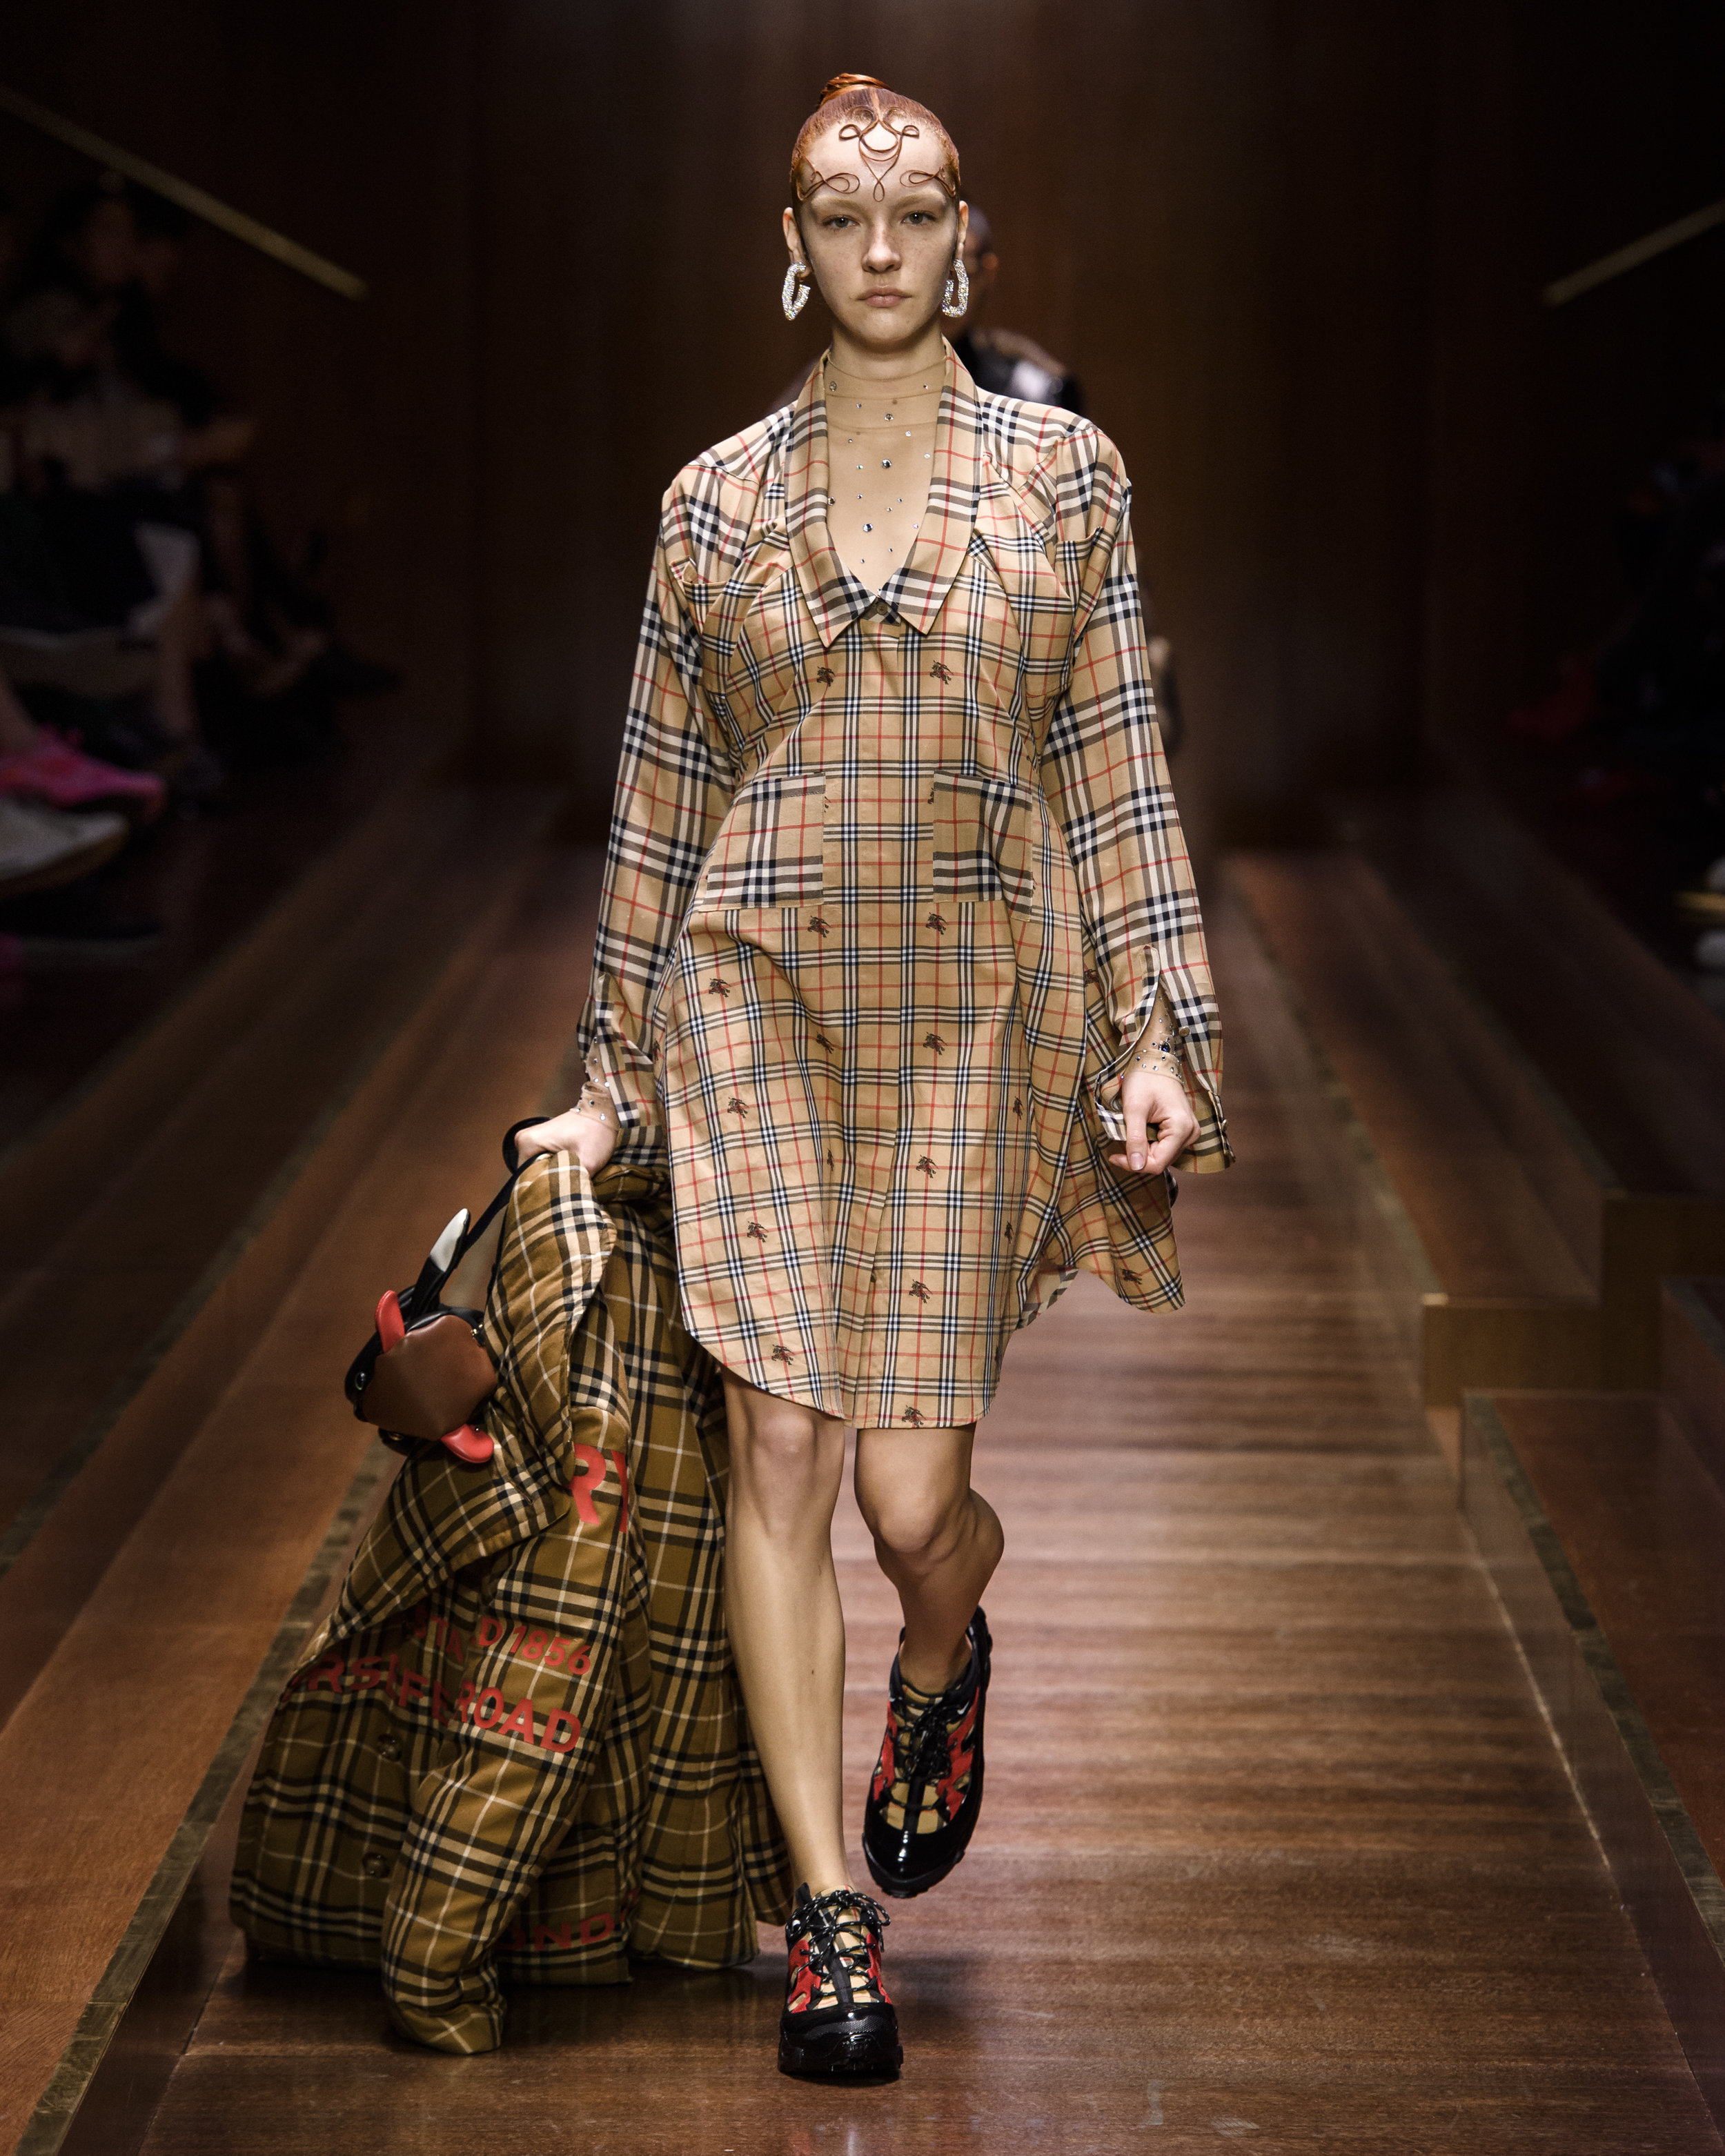 Burberry Autumn_Winter 2019 Collection - Look 26.jpg